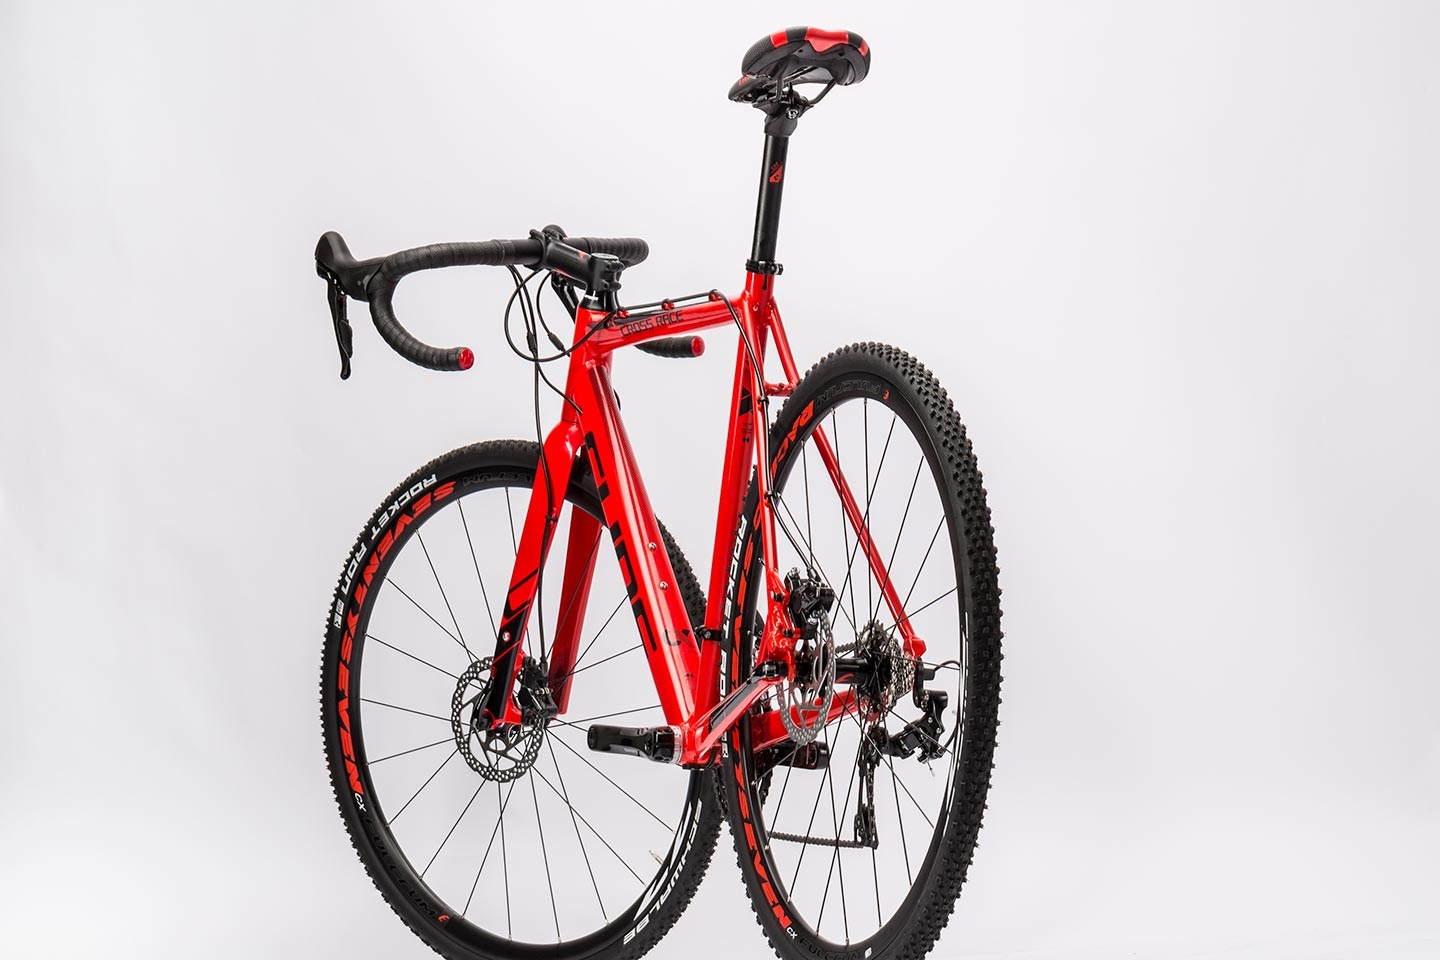 626d660b354 Cube Cross Race 2016 Cyclocross bike red/black £989.10